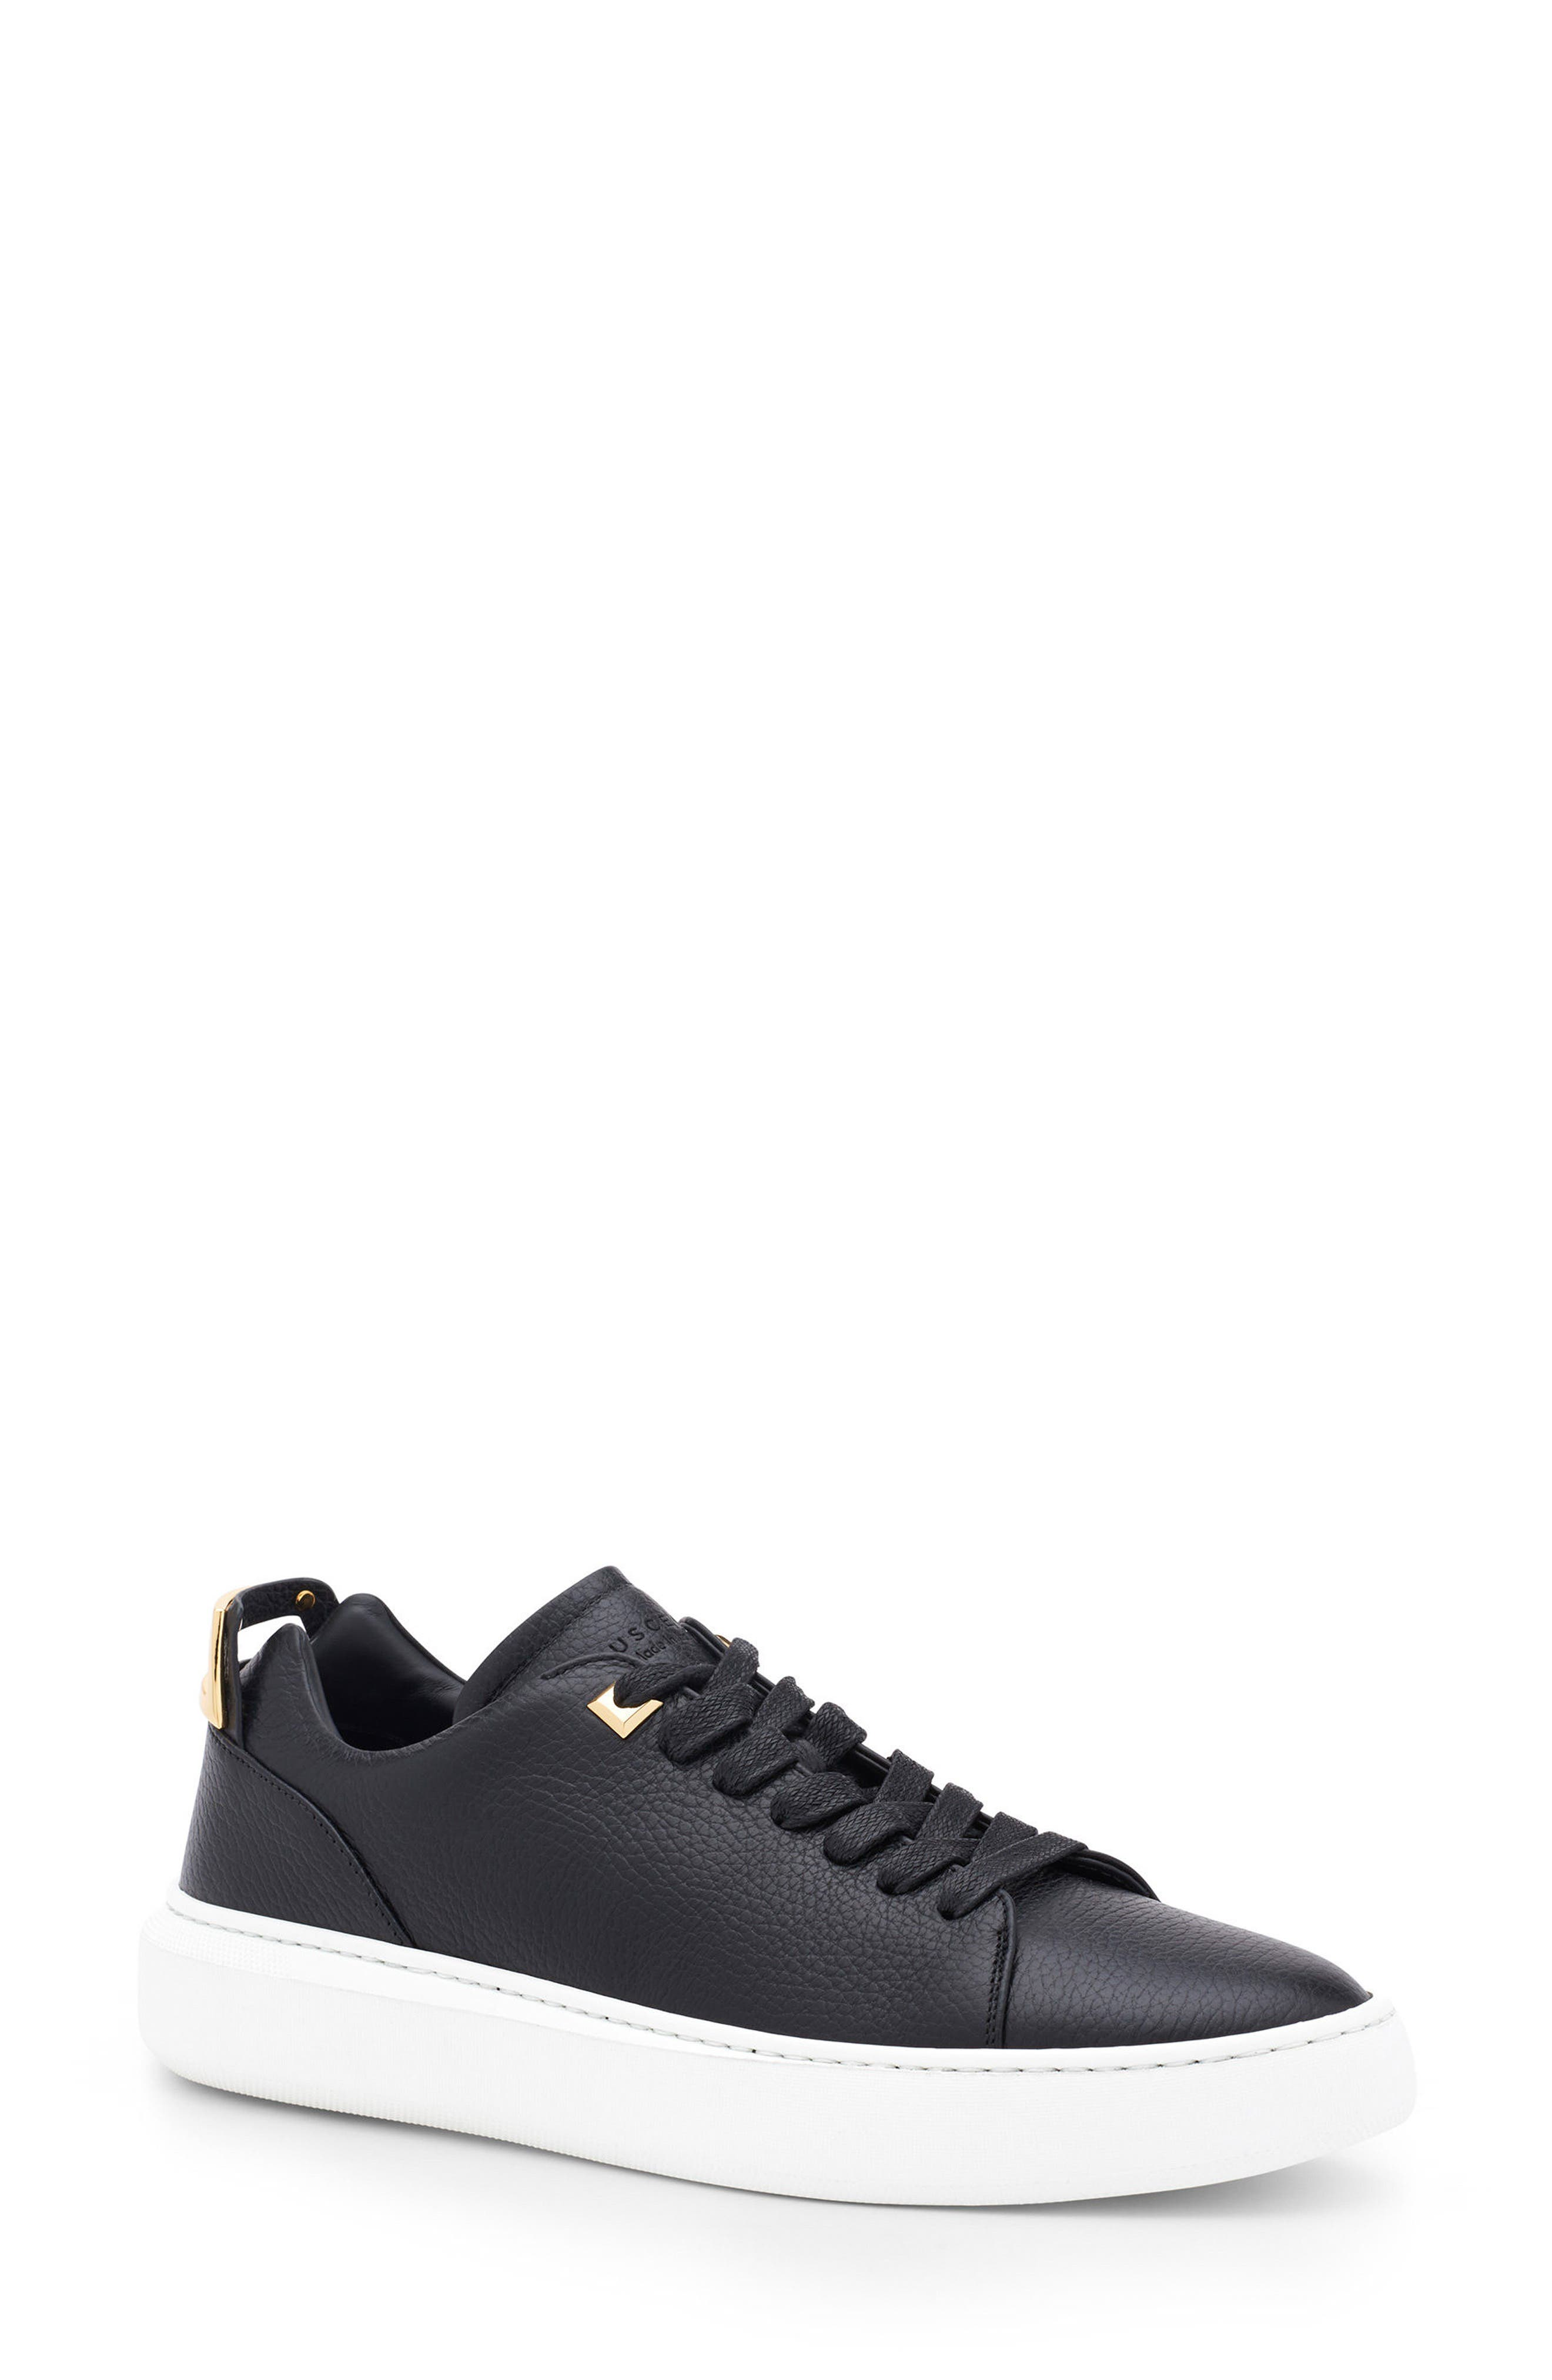 Uno Low Top Sneaker,                         Main,                         color, 001